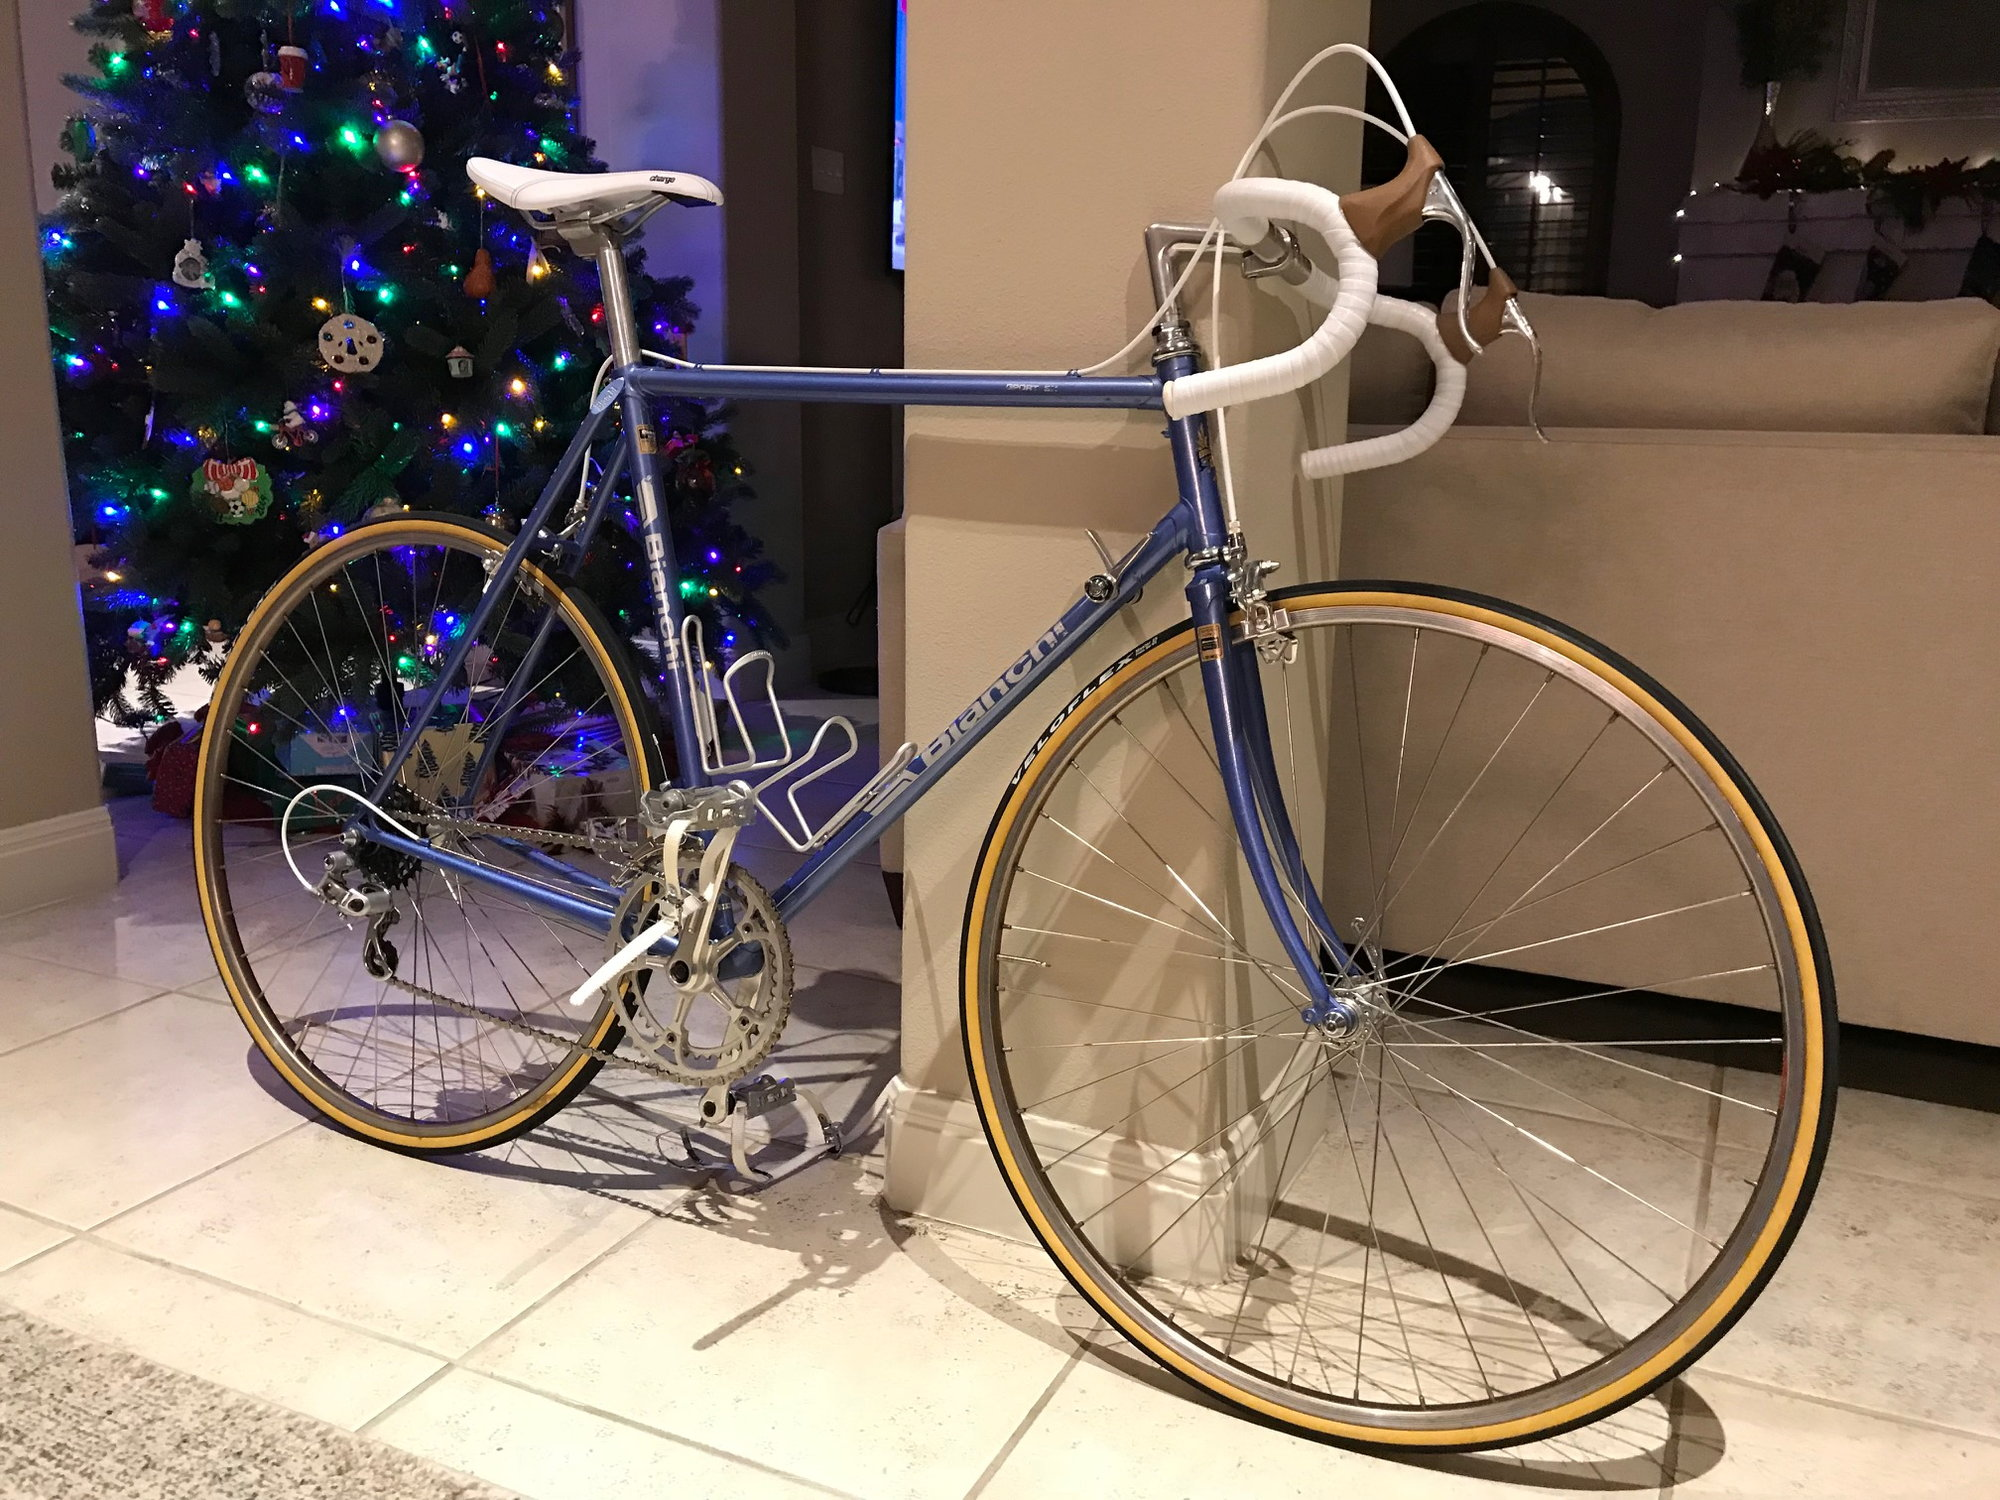 Show Us Your Bike In Front Of The Tree Page 3 Bike Forums